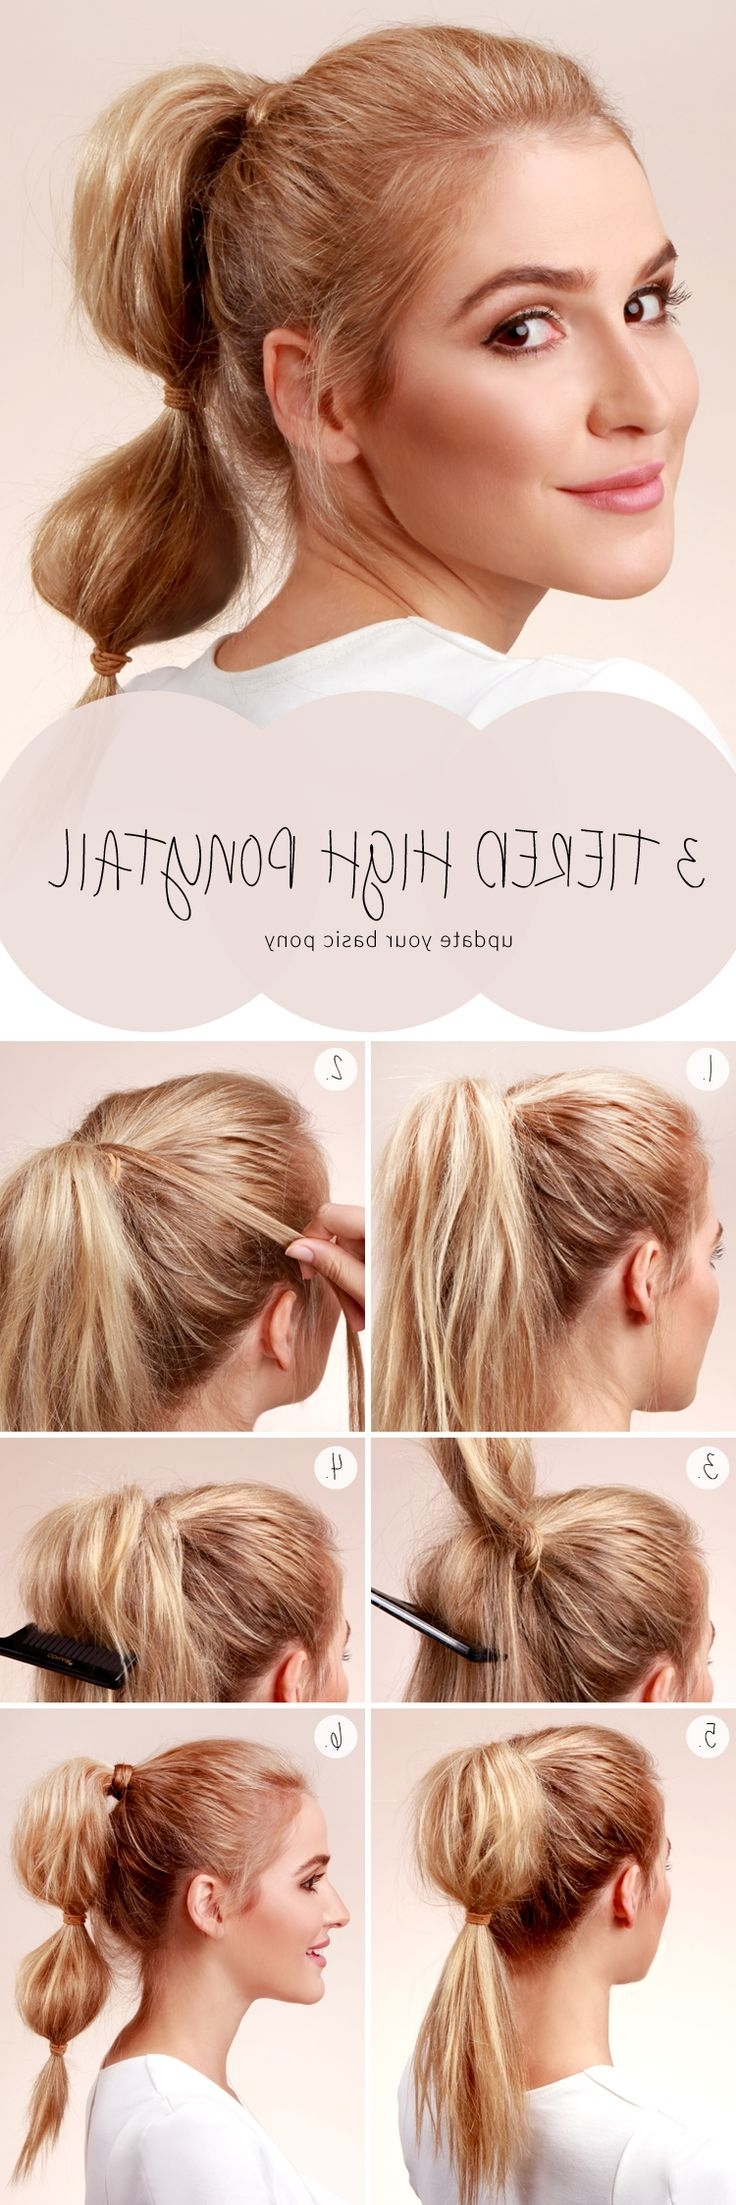 Well Known Punky Ponytail Hairstyles With 10 Quick And Easy Ideas How To Make An Pretty Hairstyle – Pretty Designs (View 20 of 20)